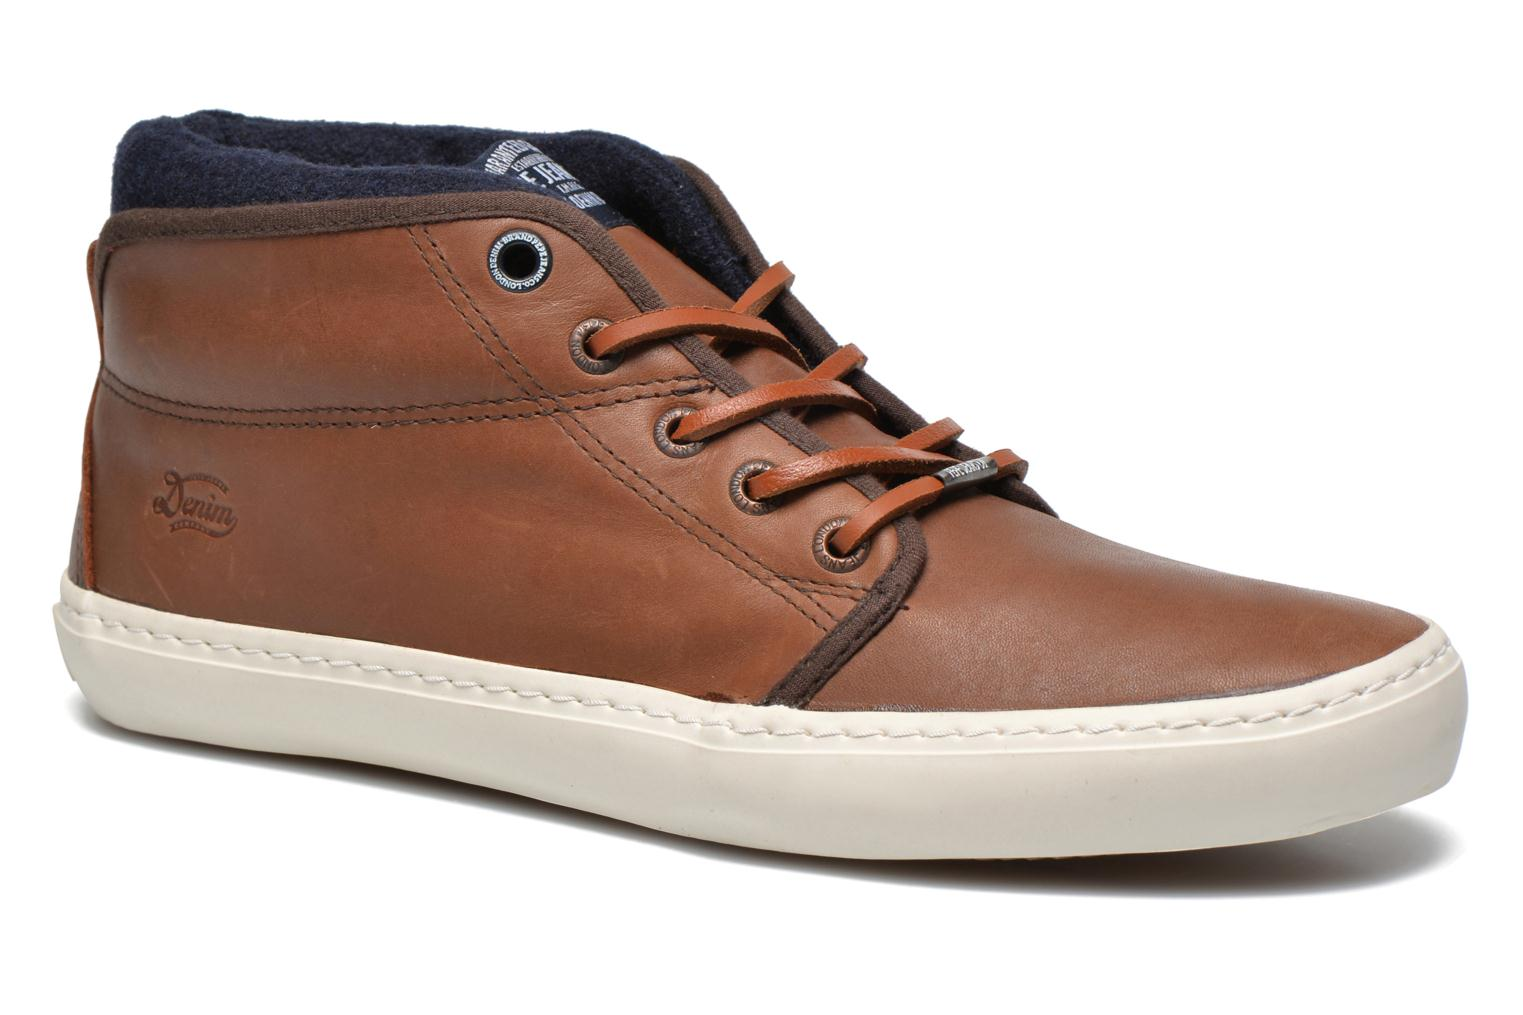 Sneakers Equis Basic by Pepe jeans